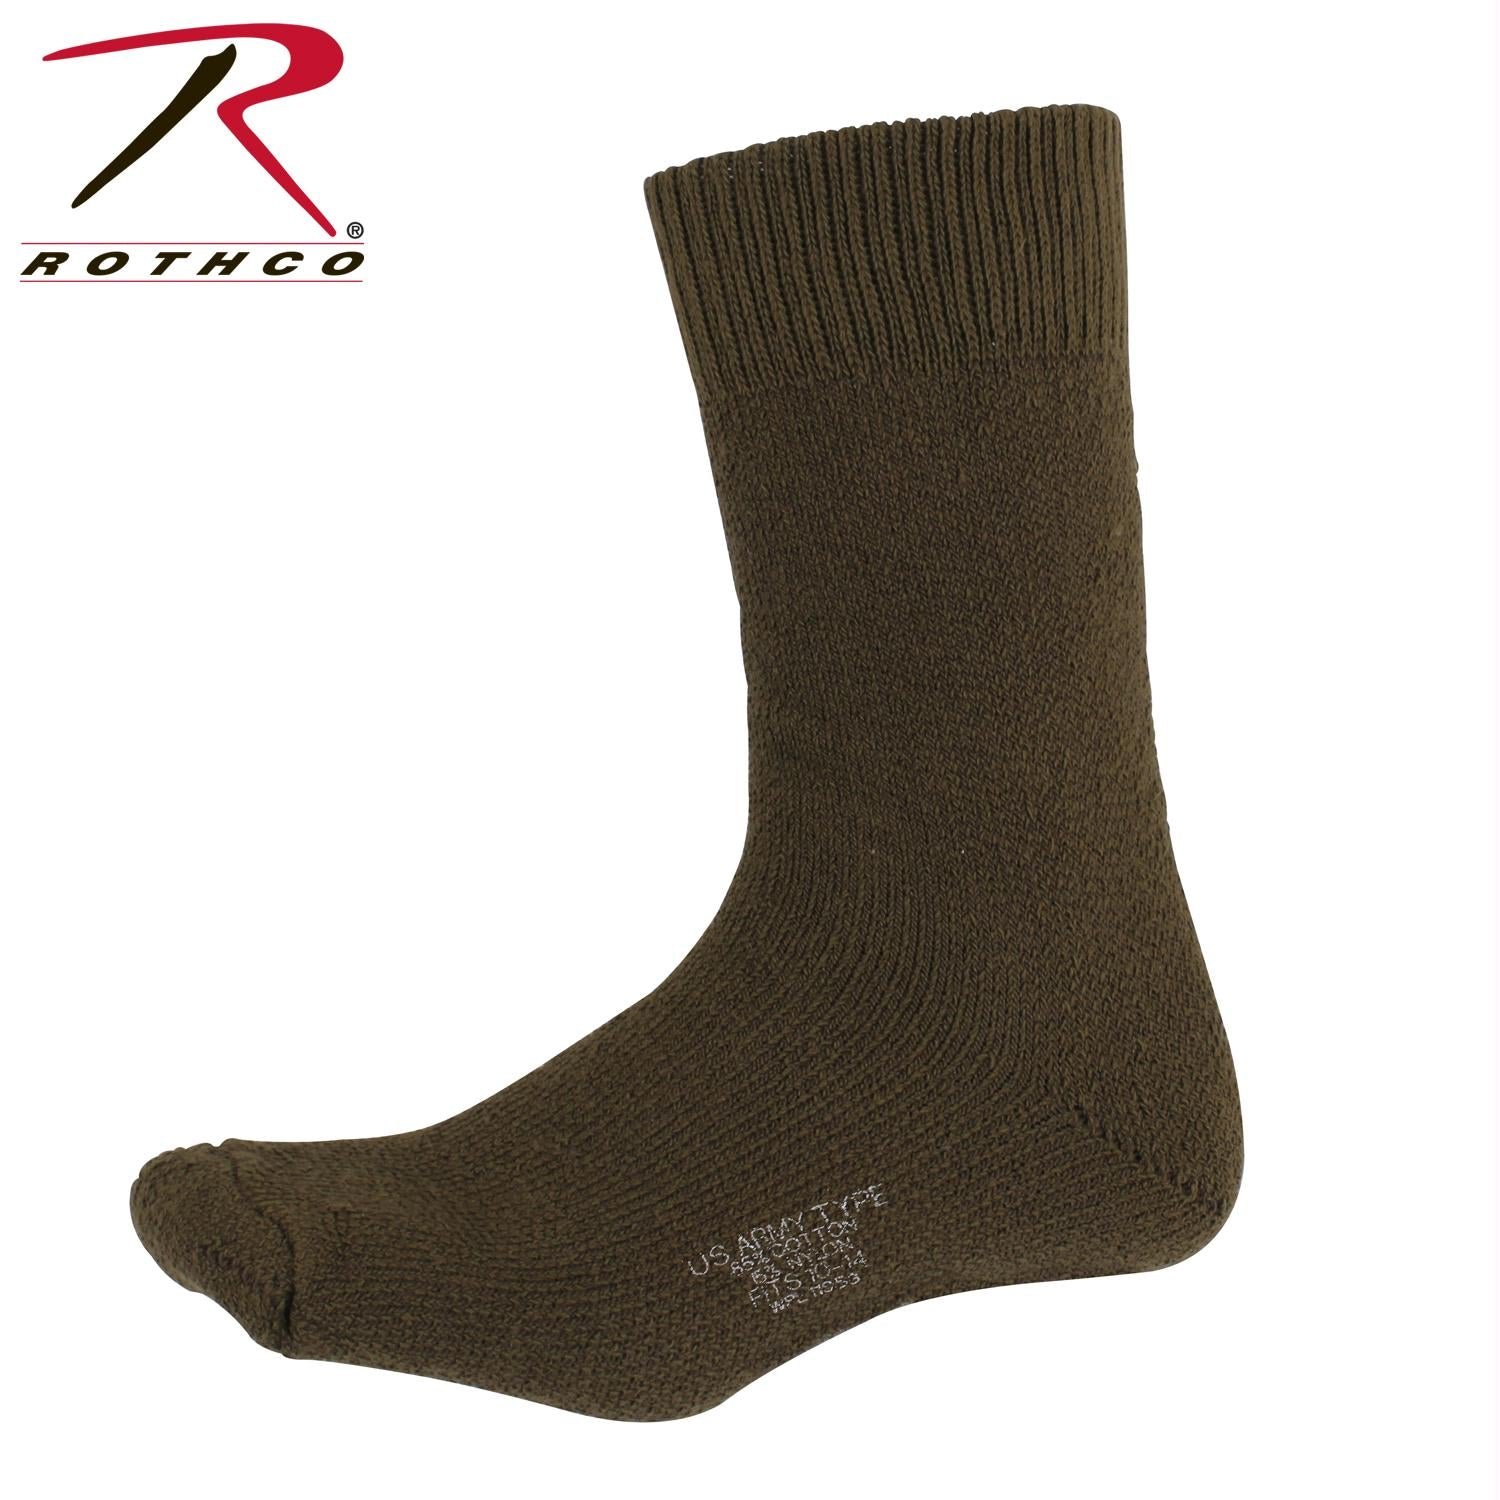 Rothco Thermal Boot Socks - Olive Drab